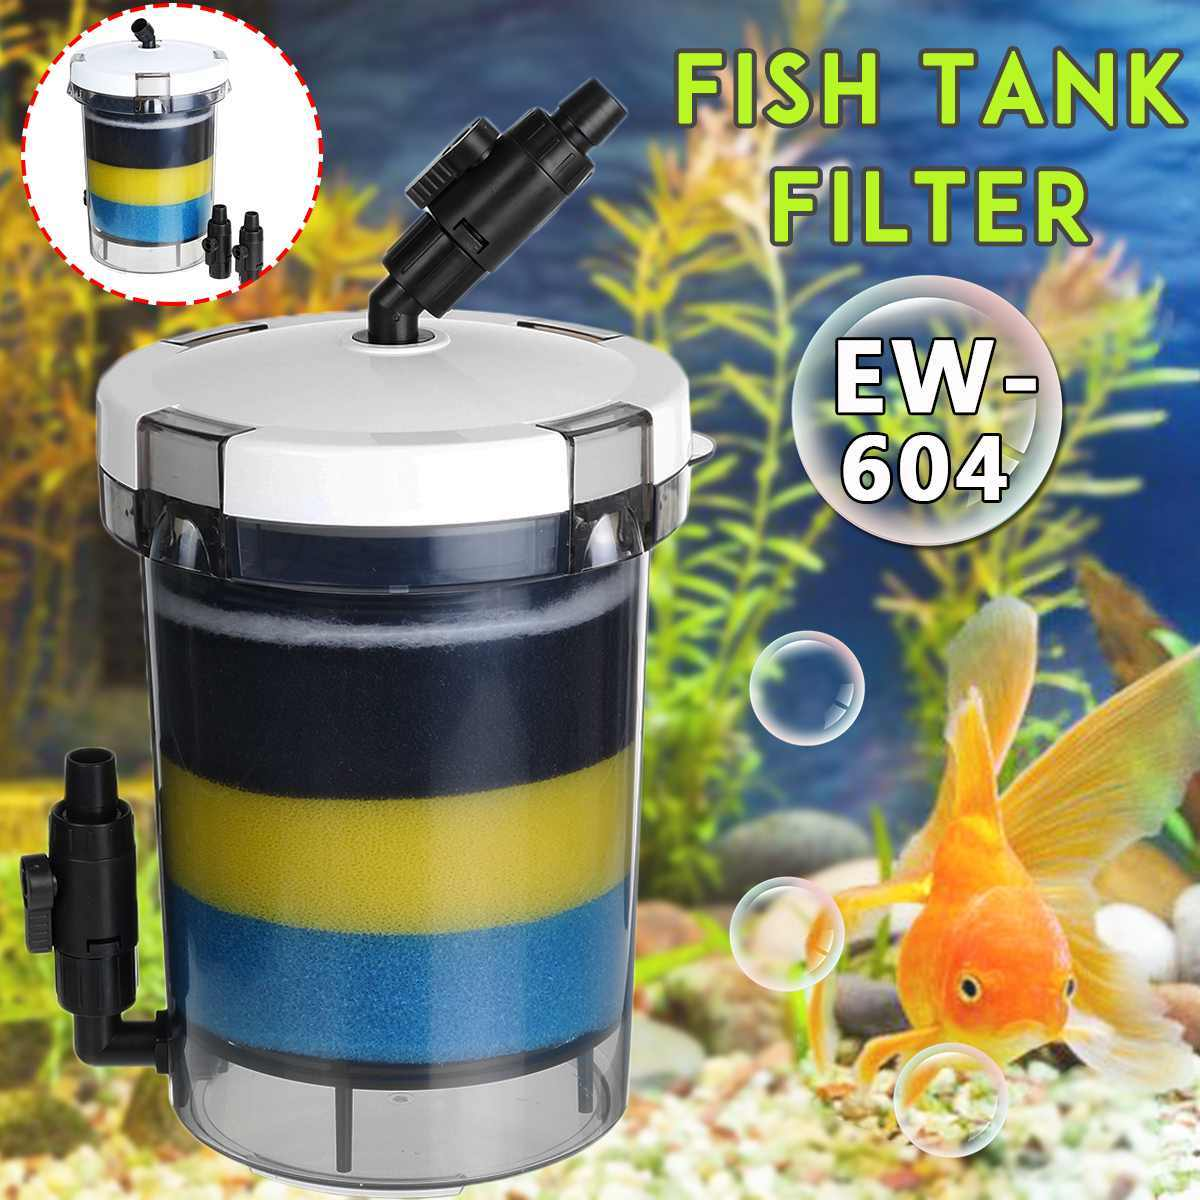 800L/H Filter Aquarium Ikan Tangki Filter untuk Aquarium Pompa Udara 220-240V EW-604 EW-604B Eksternal Akuarium filter Ember